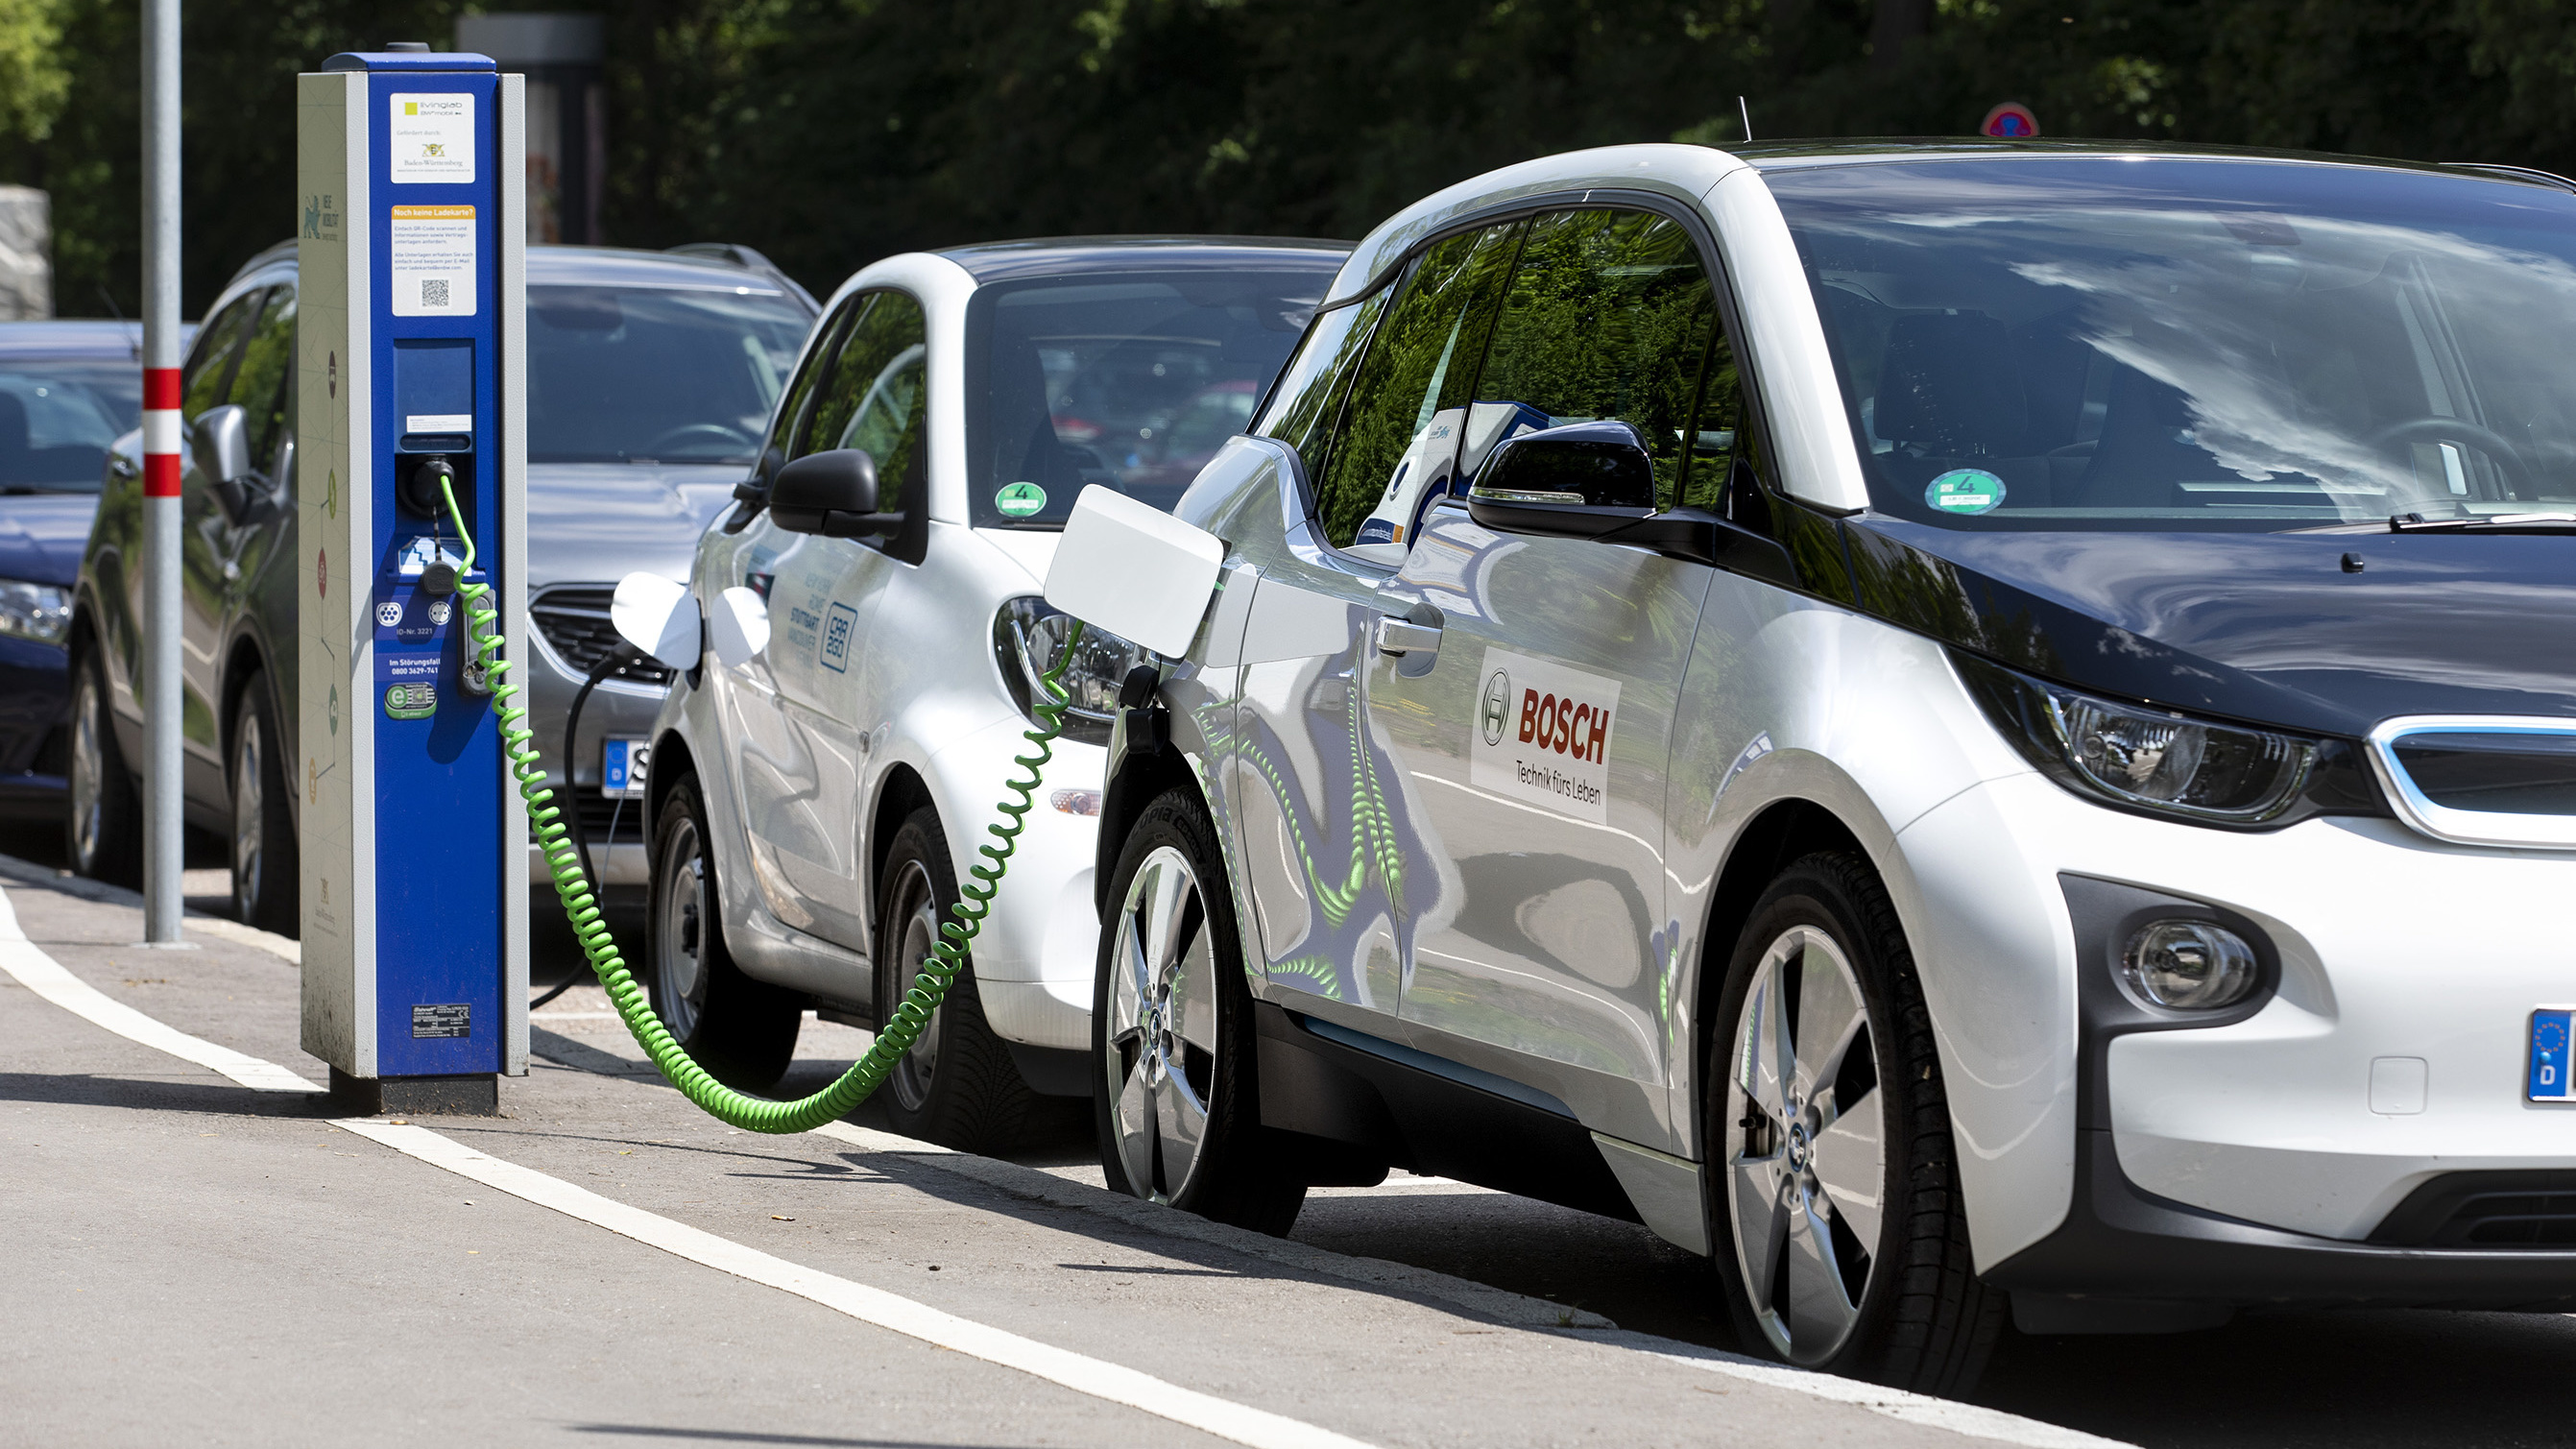 When it comes to electromobility, Bosch is driving in the fast lane